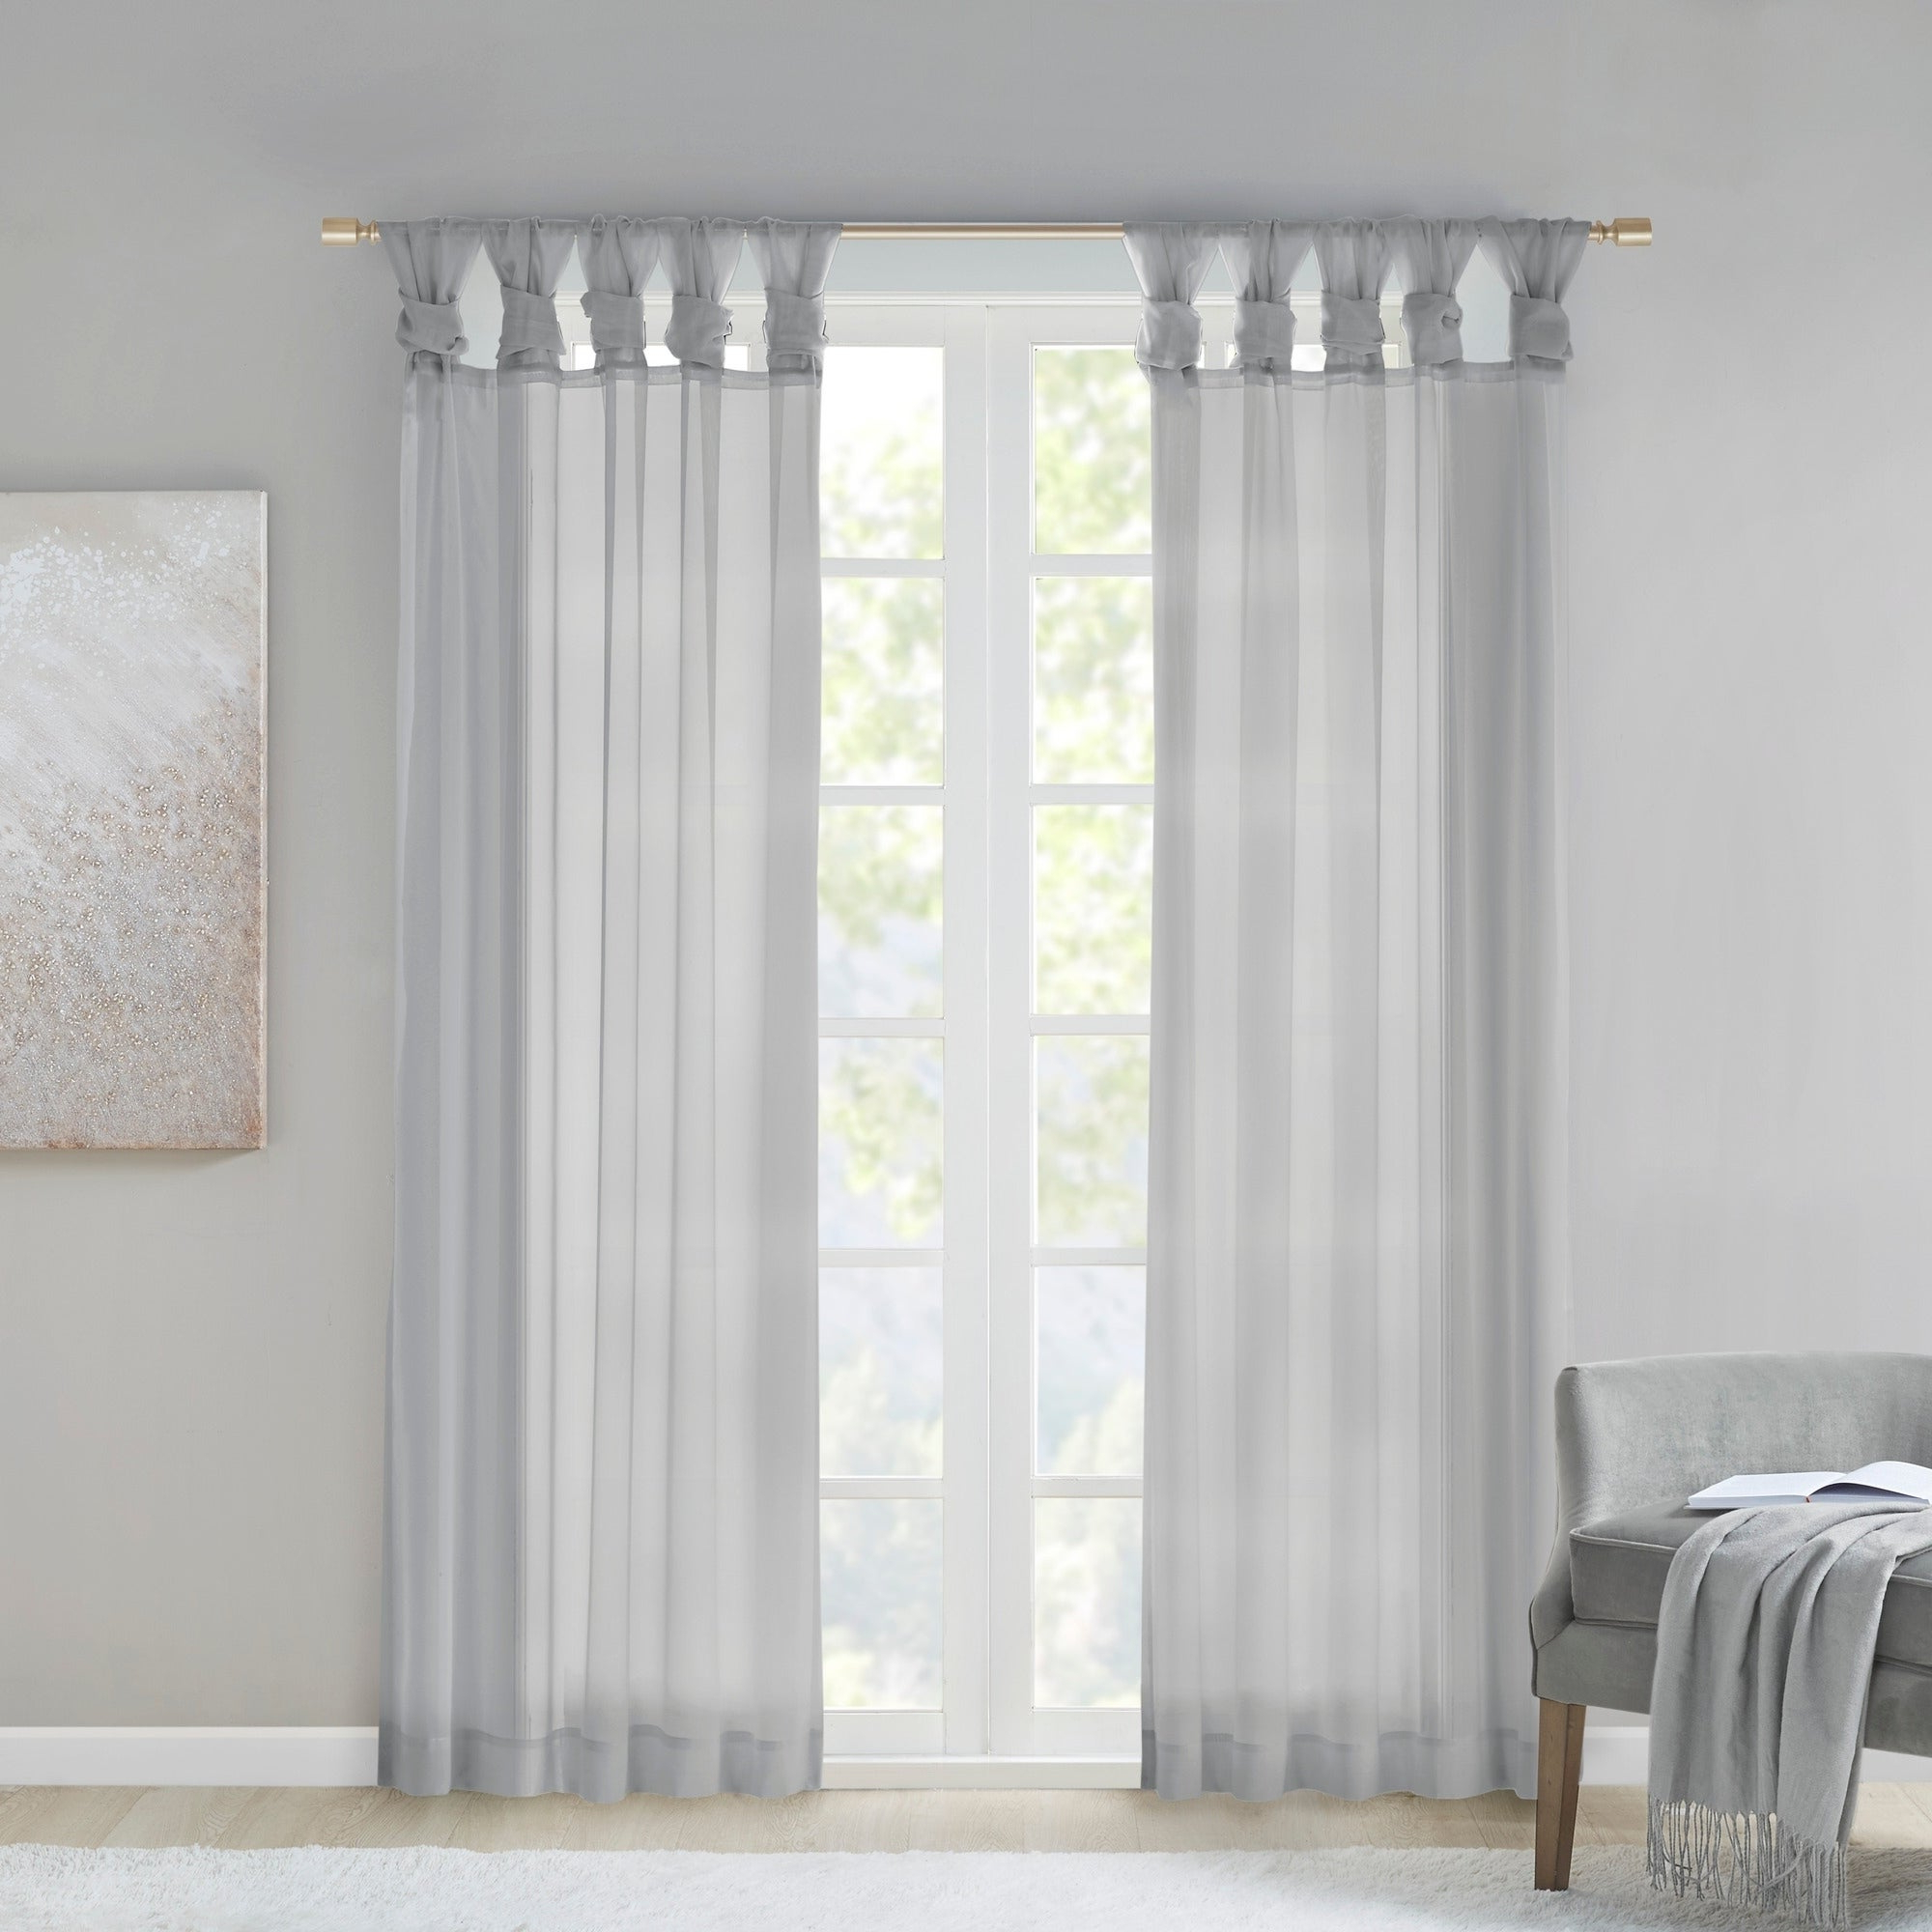 Elowen White Twist Tab Voile Sheer Curtain Panel Pairs Regarding Fashionable Madison Park Elowen White Twist Tab Voile Sheer Curtain Panel Pair (Gallery 2 of 20)